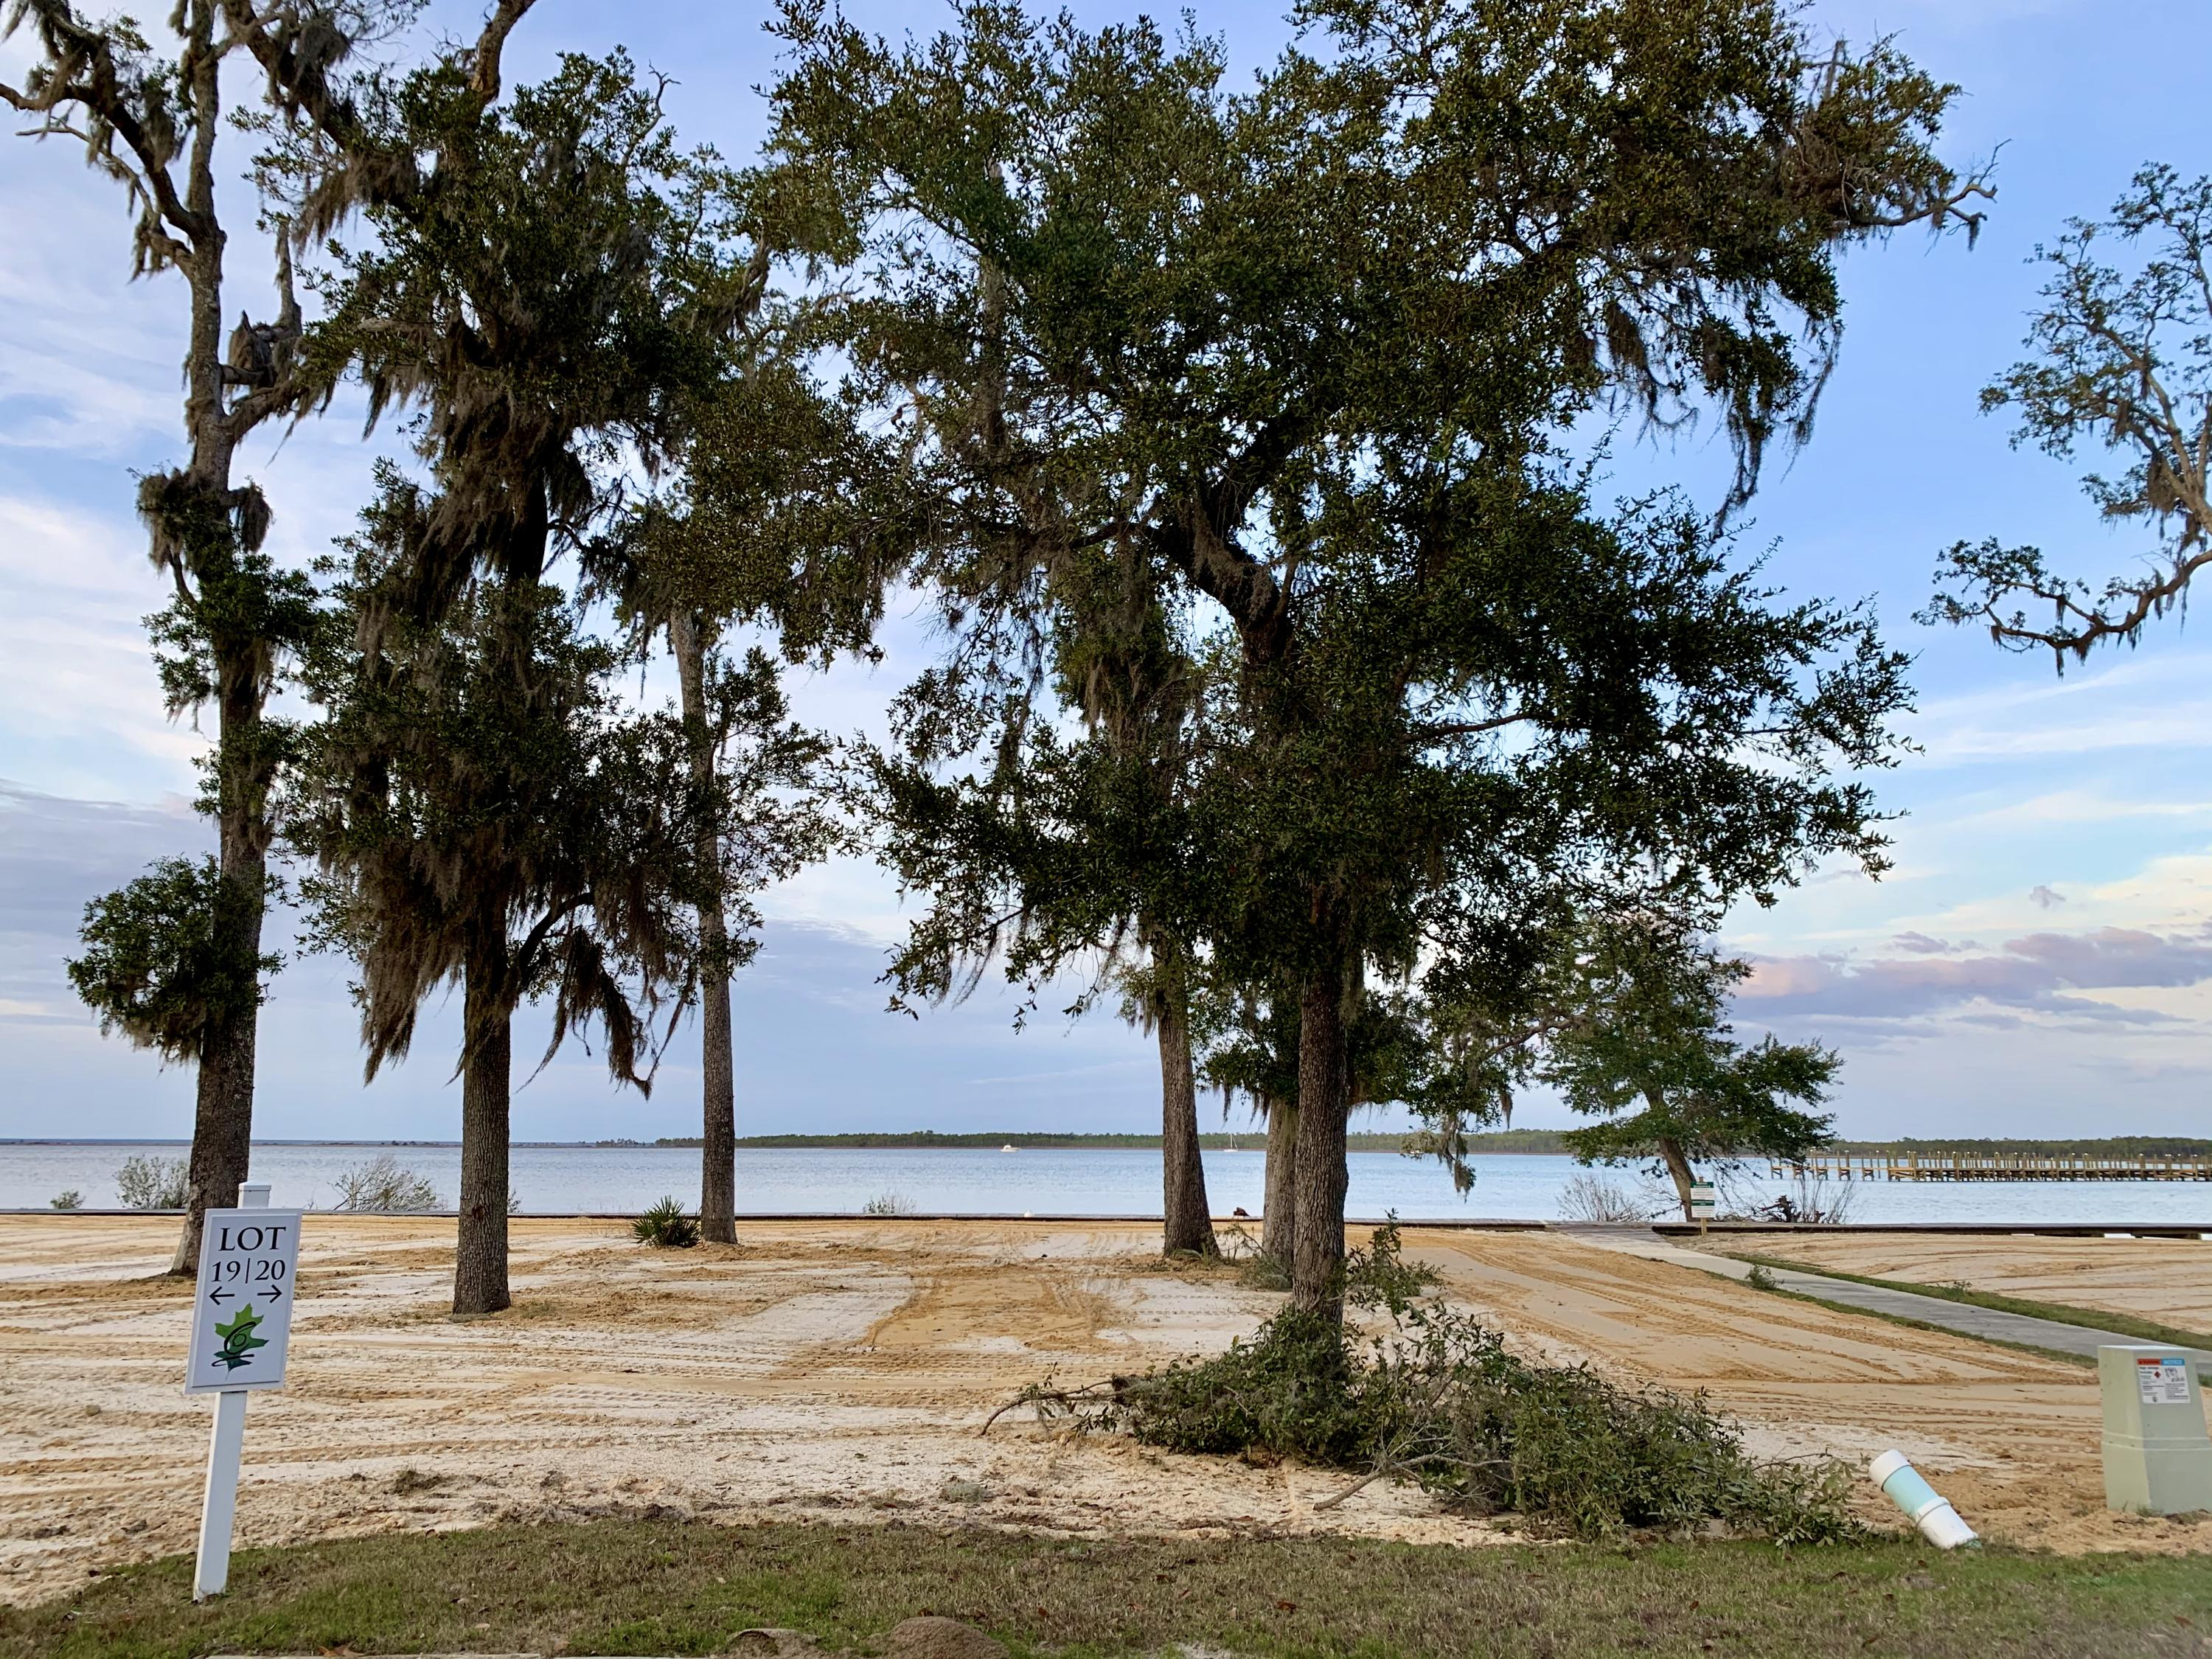 Lot 19 is a premium bay front homesite situated on a quiet cul-de-sac and tucked away with only nati